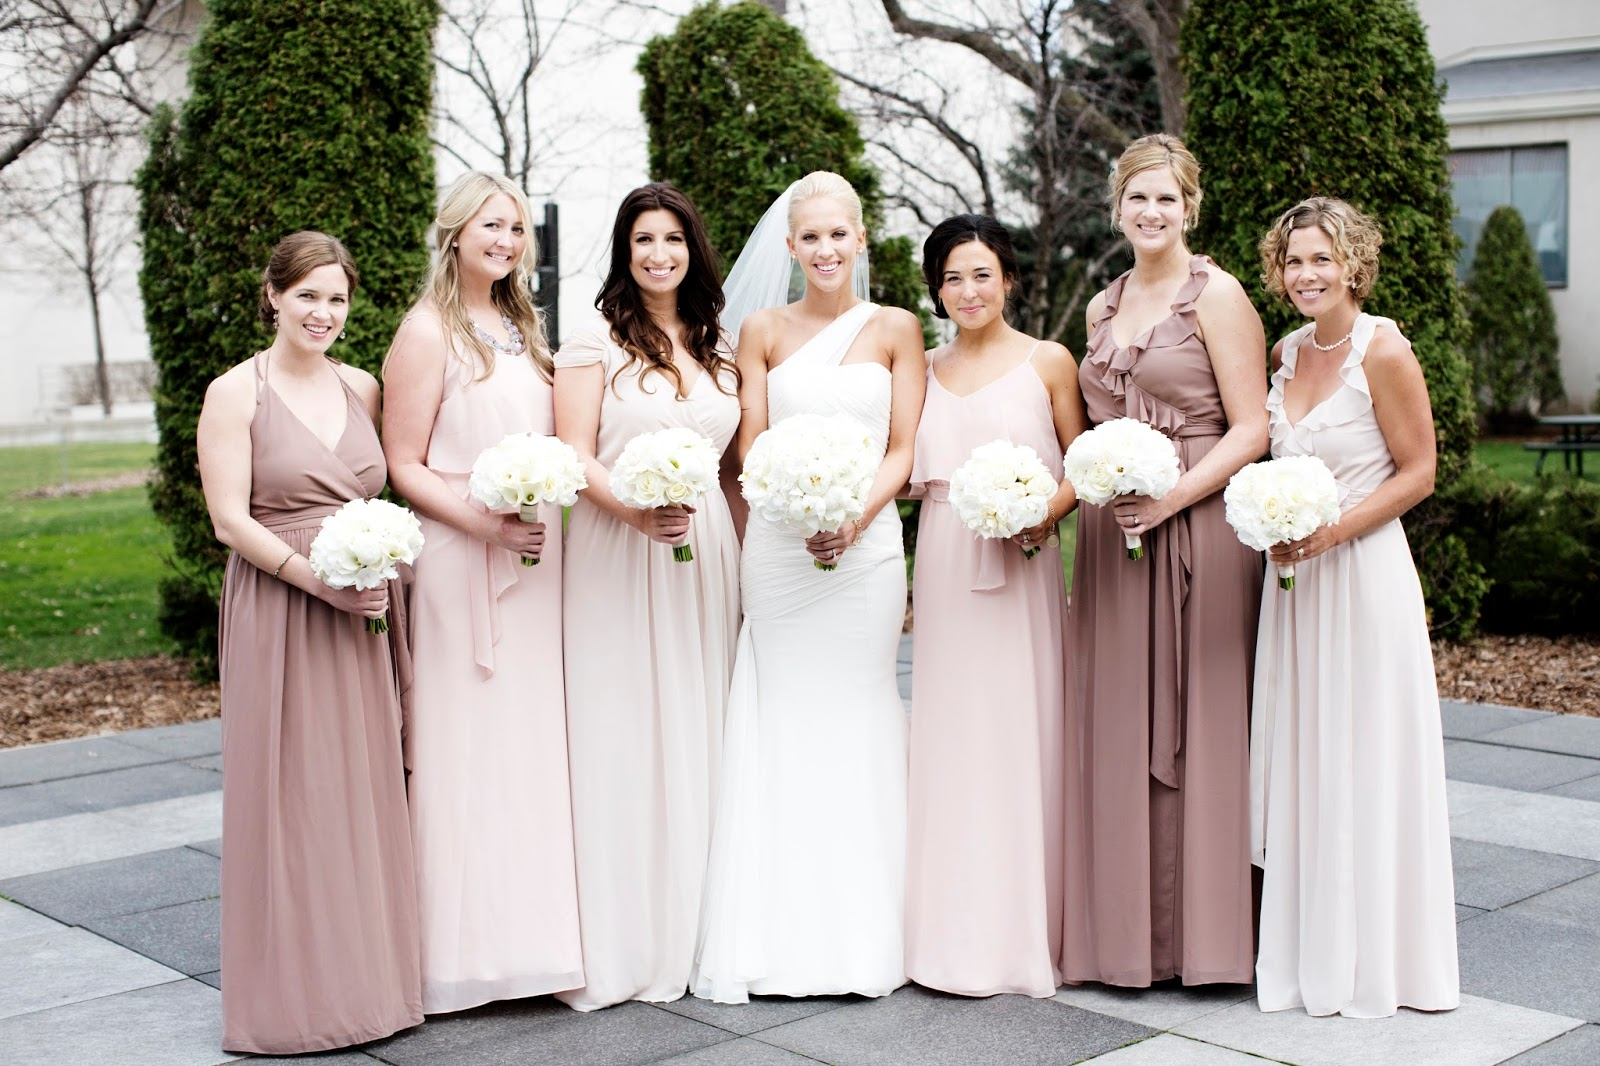 Our bella bridesmaids bella bridesmaids bridesmaids buzz ombrellifo Choice Image